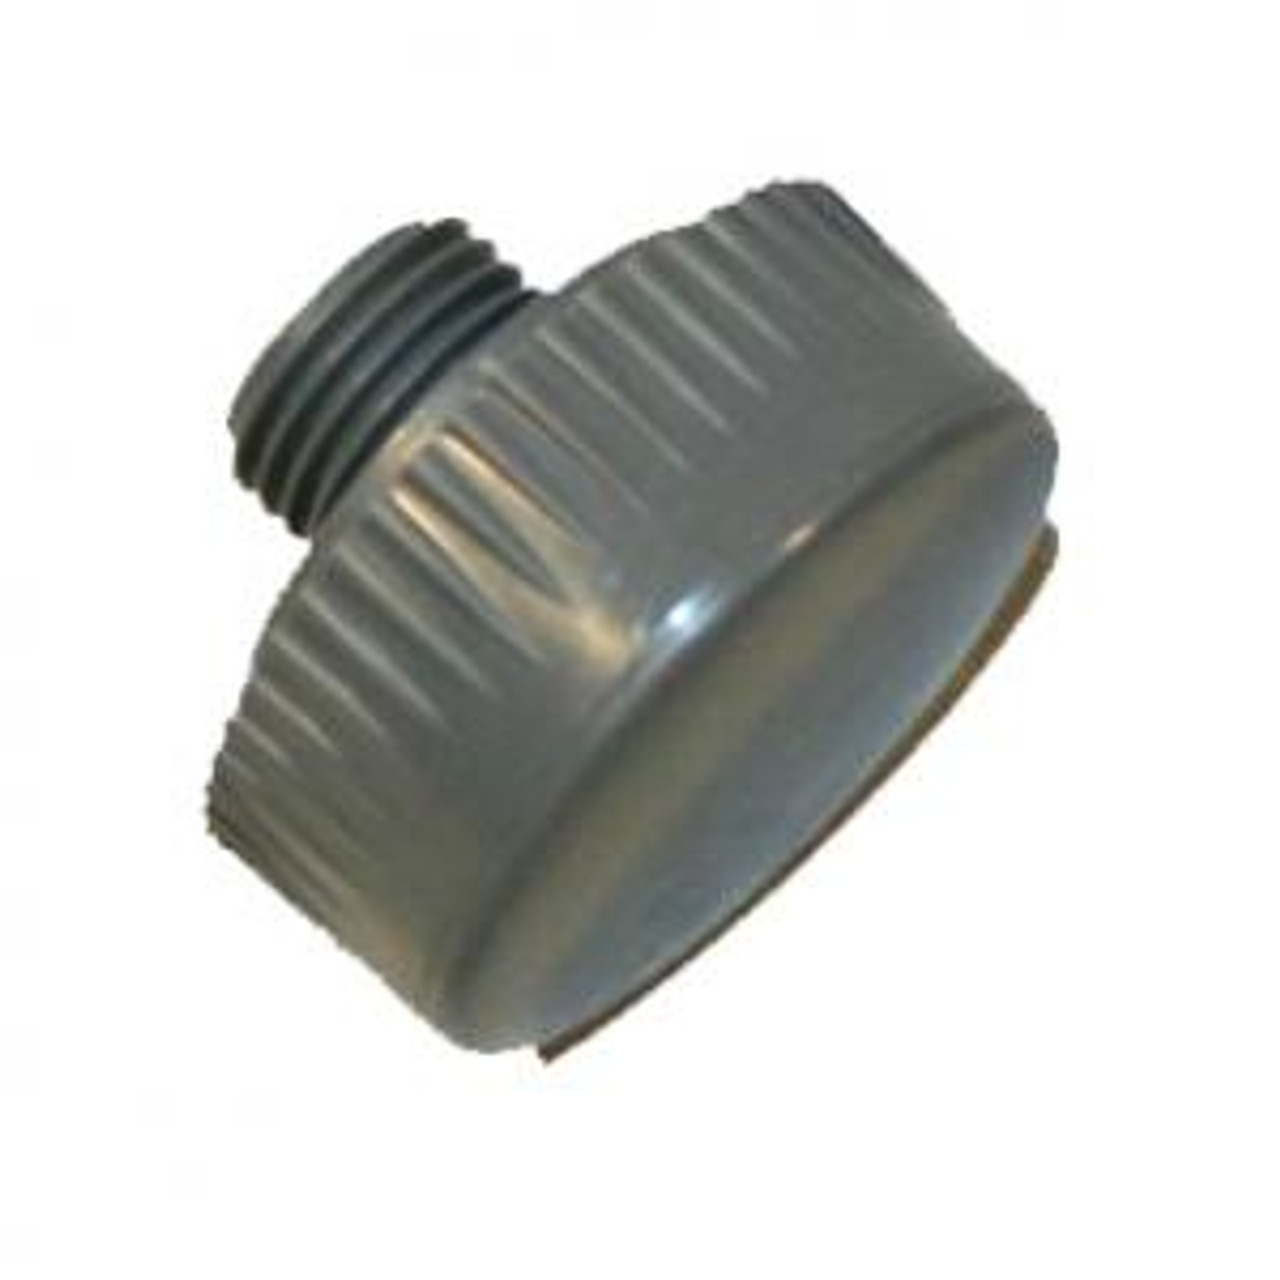 """Thor 76-710VF 1 1/4"""" Soft Gray replacement tip for Thor/Vaughan DB125 and NT125 hammers. One tip."""